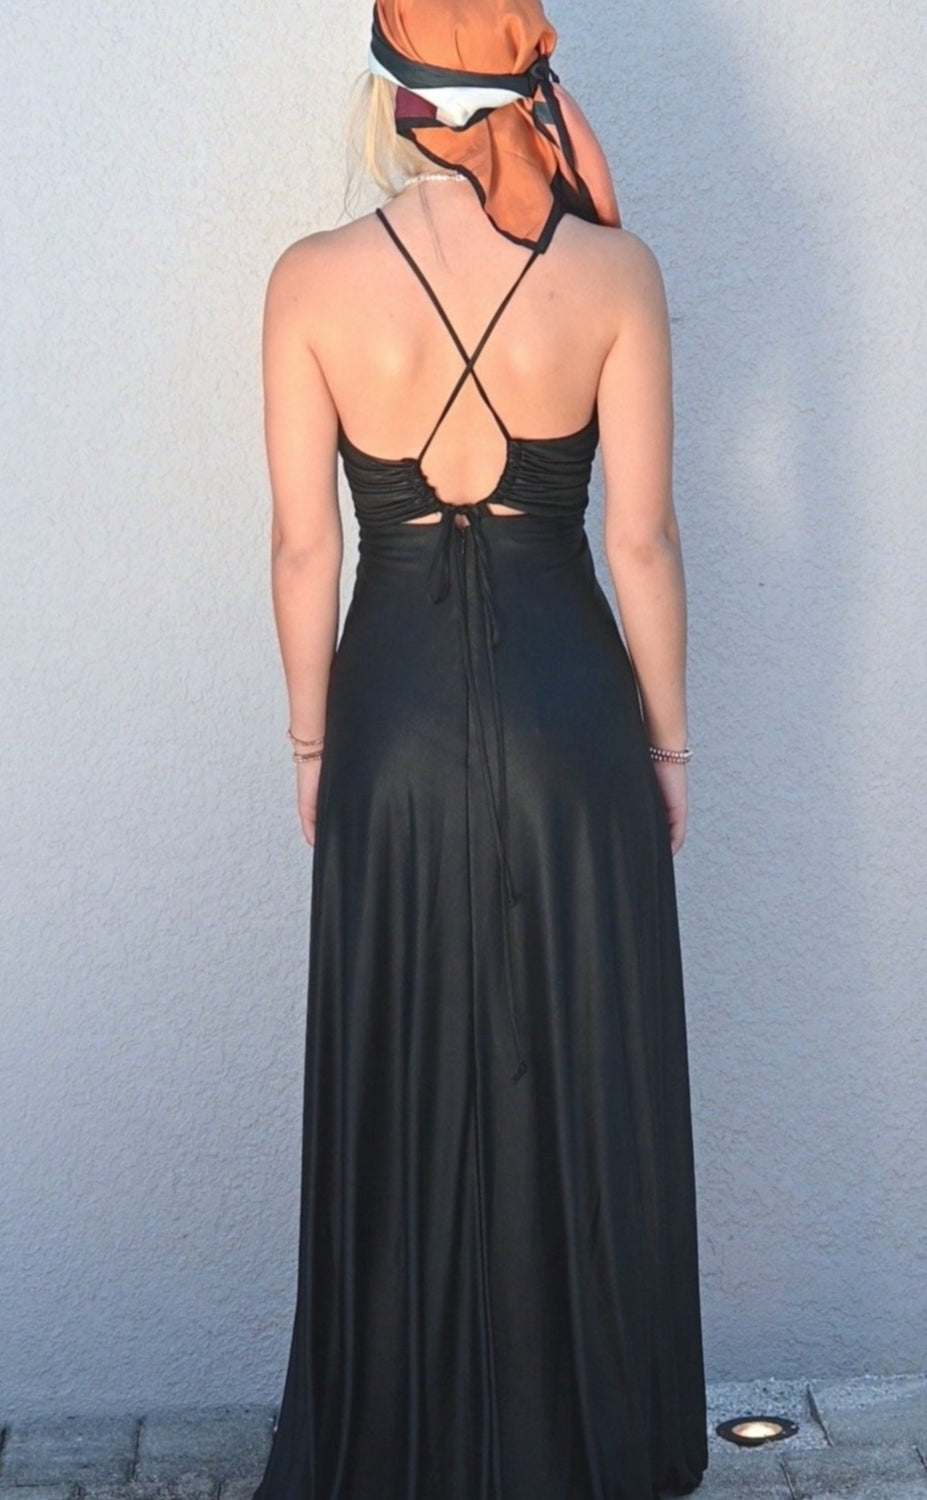 SUNDIS Leather-like Knit Sundress